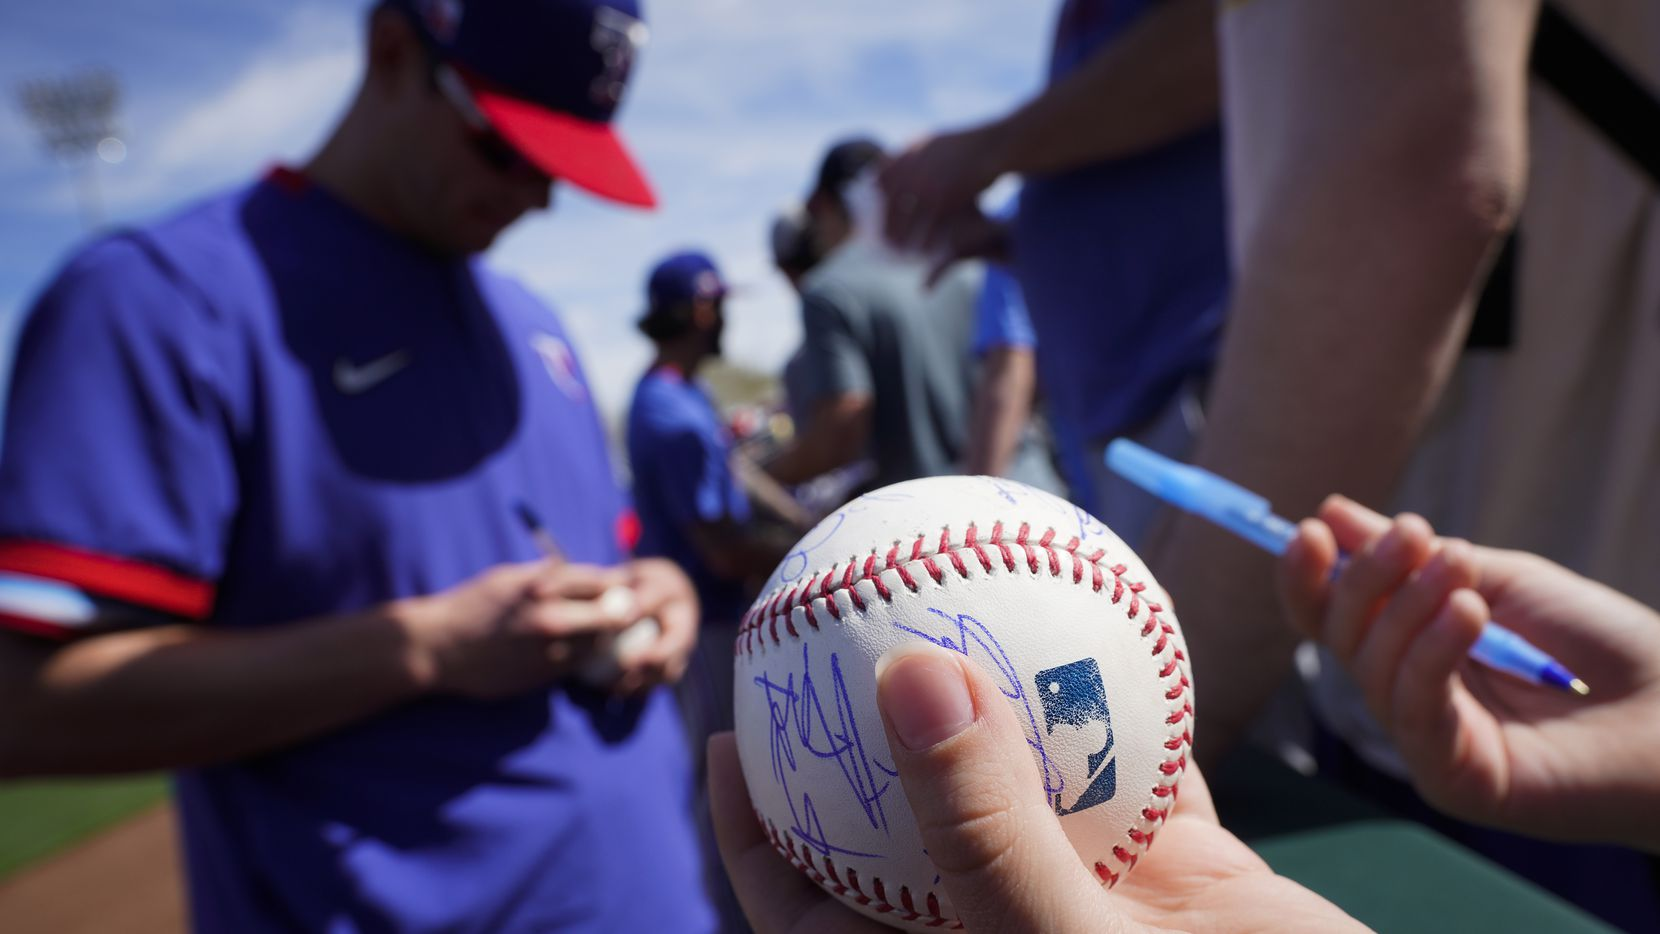 Texas Rangers infielder Nick Solak signs autographs before a spring game against the Kansas City Royals at Surprise Stadium in Surprise, Ariz., a short drive from Phoenix.